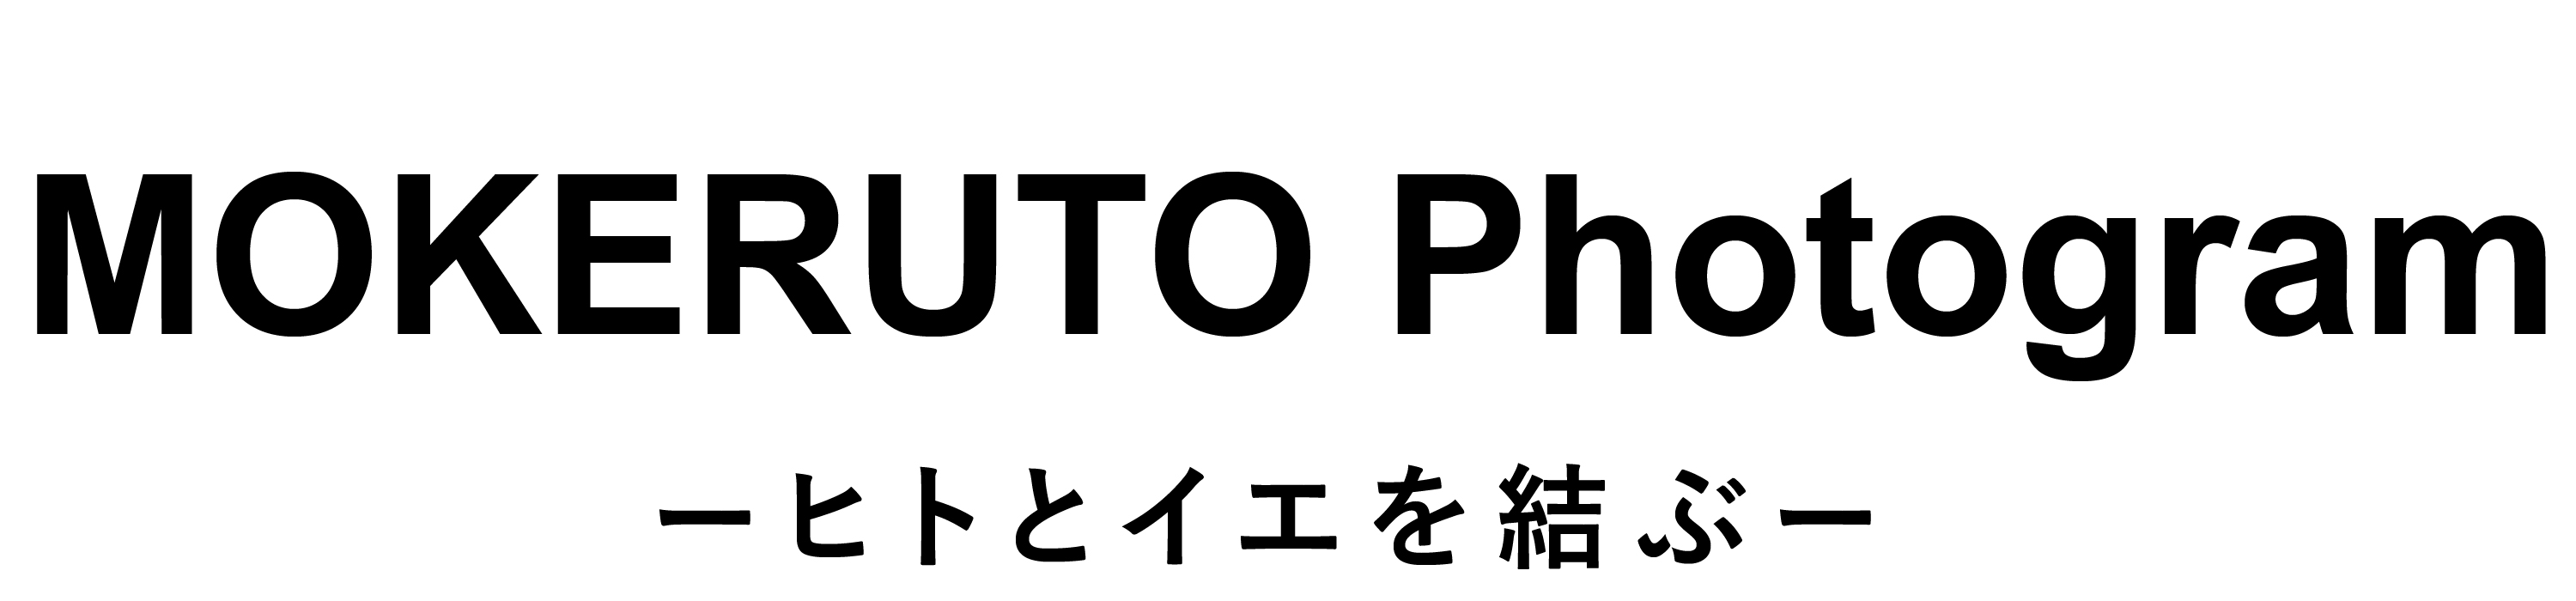 MOKERUTO Photogram